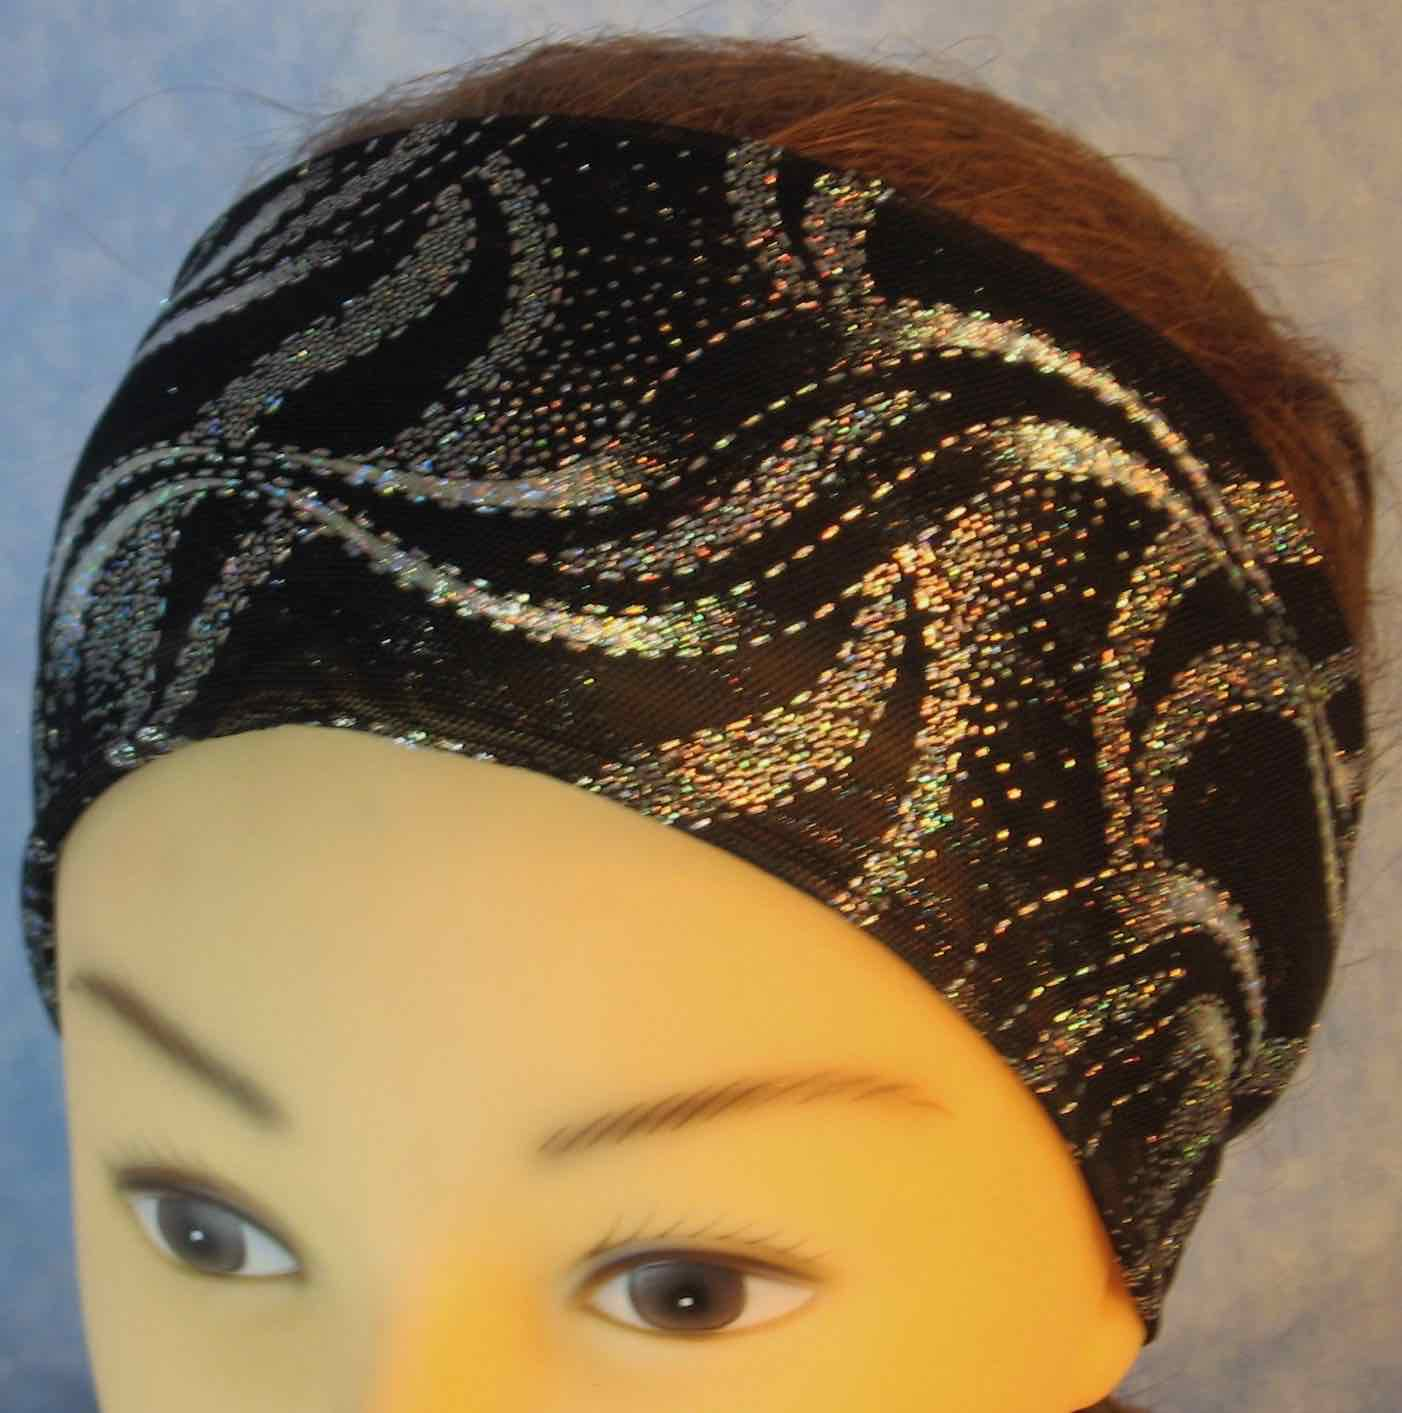 Headband-Silver Waves On Black Stretchy Tulle-Adult S